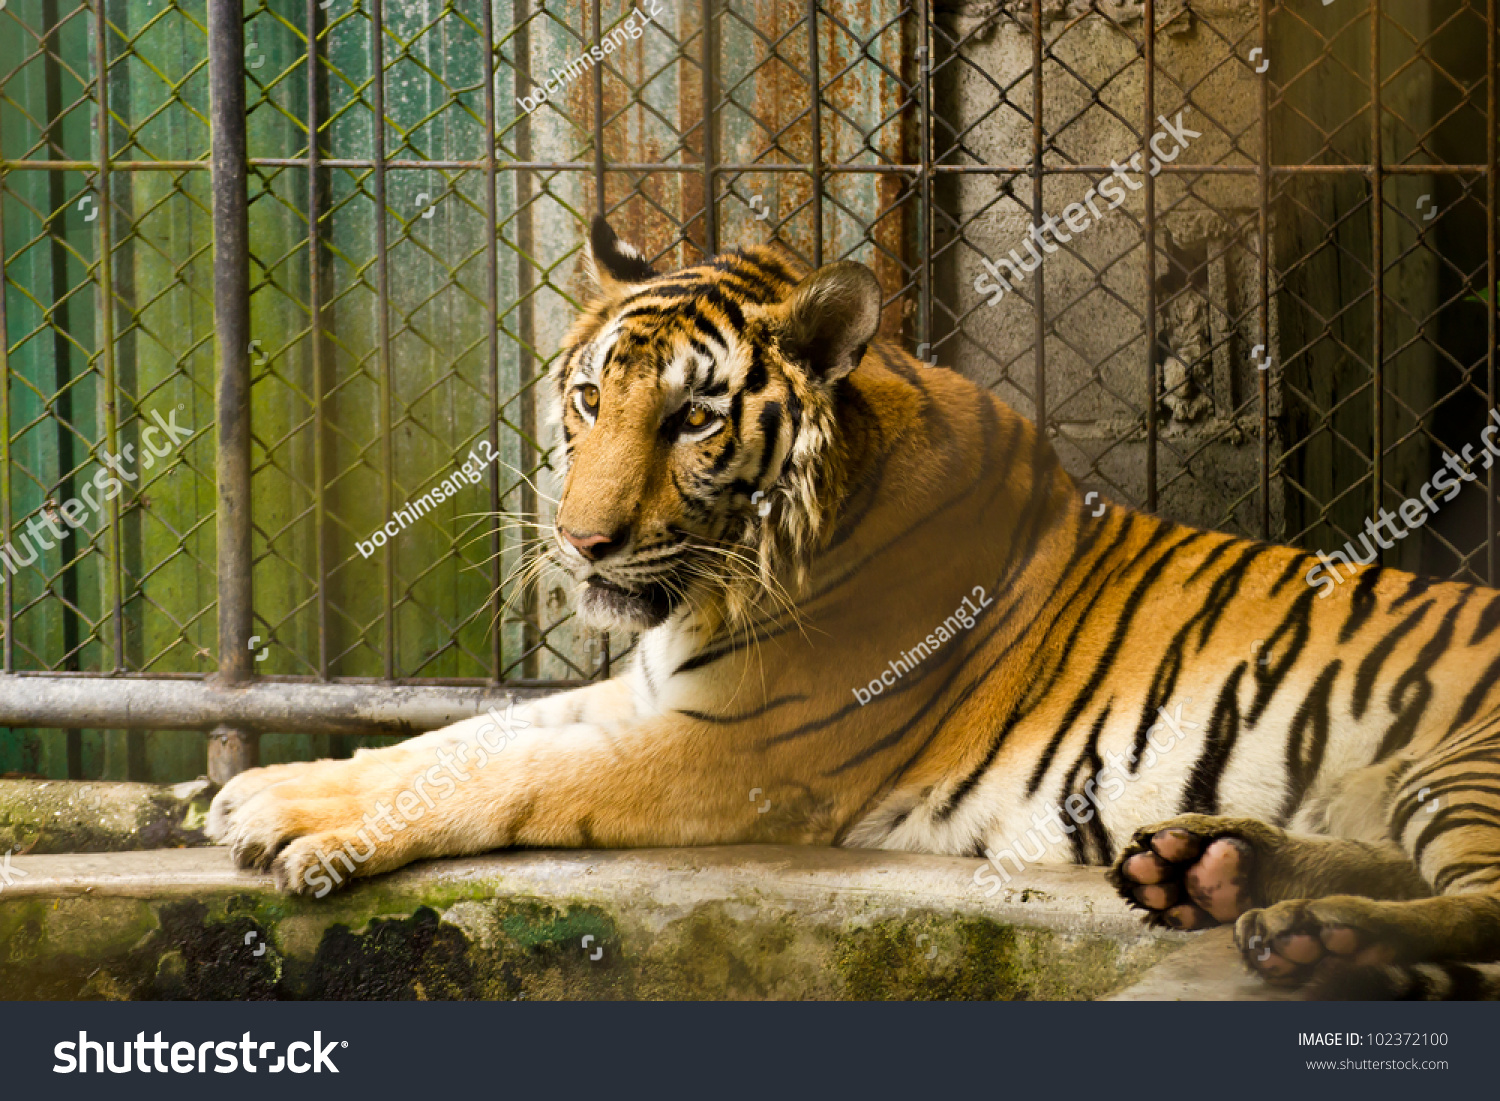 Tiger cage zoo stock photo 102372100 shutterstock - Tiger in cage images ...